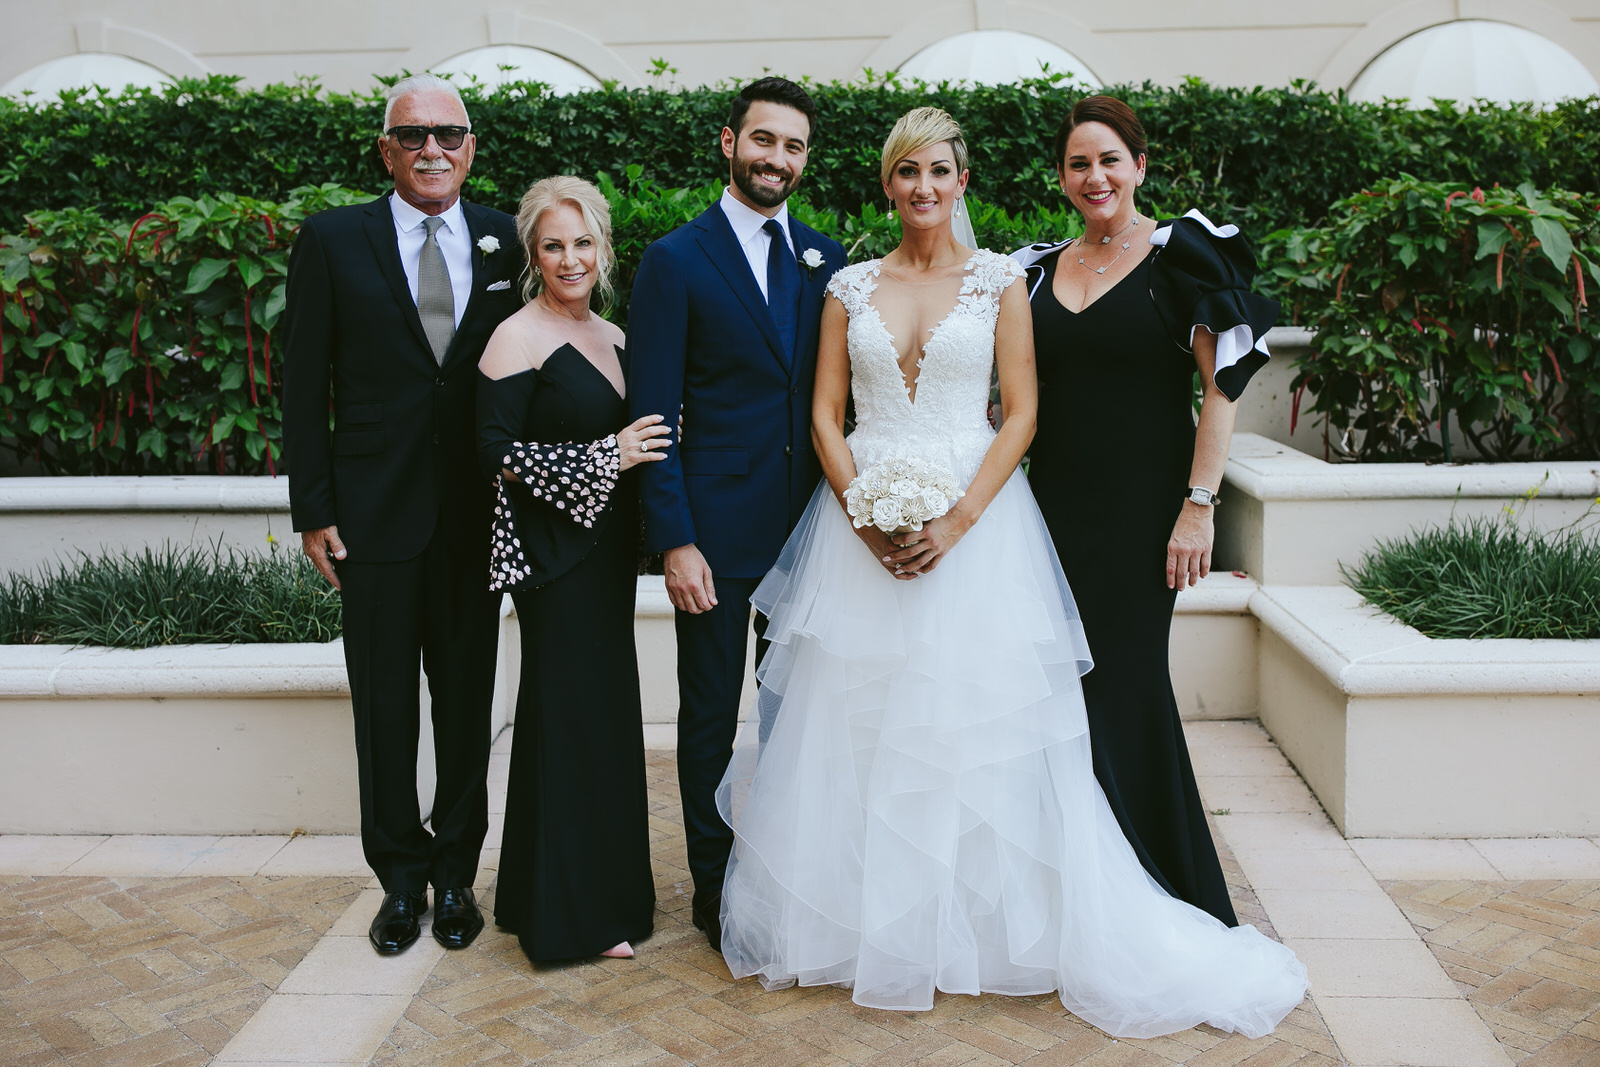 ritz carlton key biscayne family formal wedding portraits